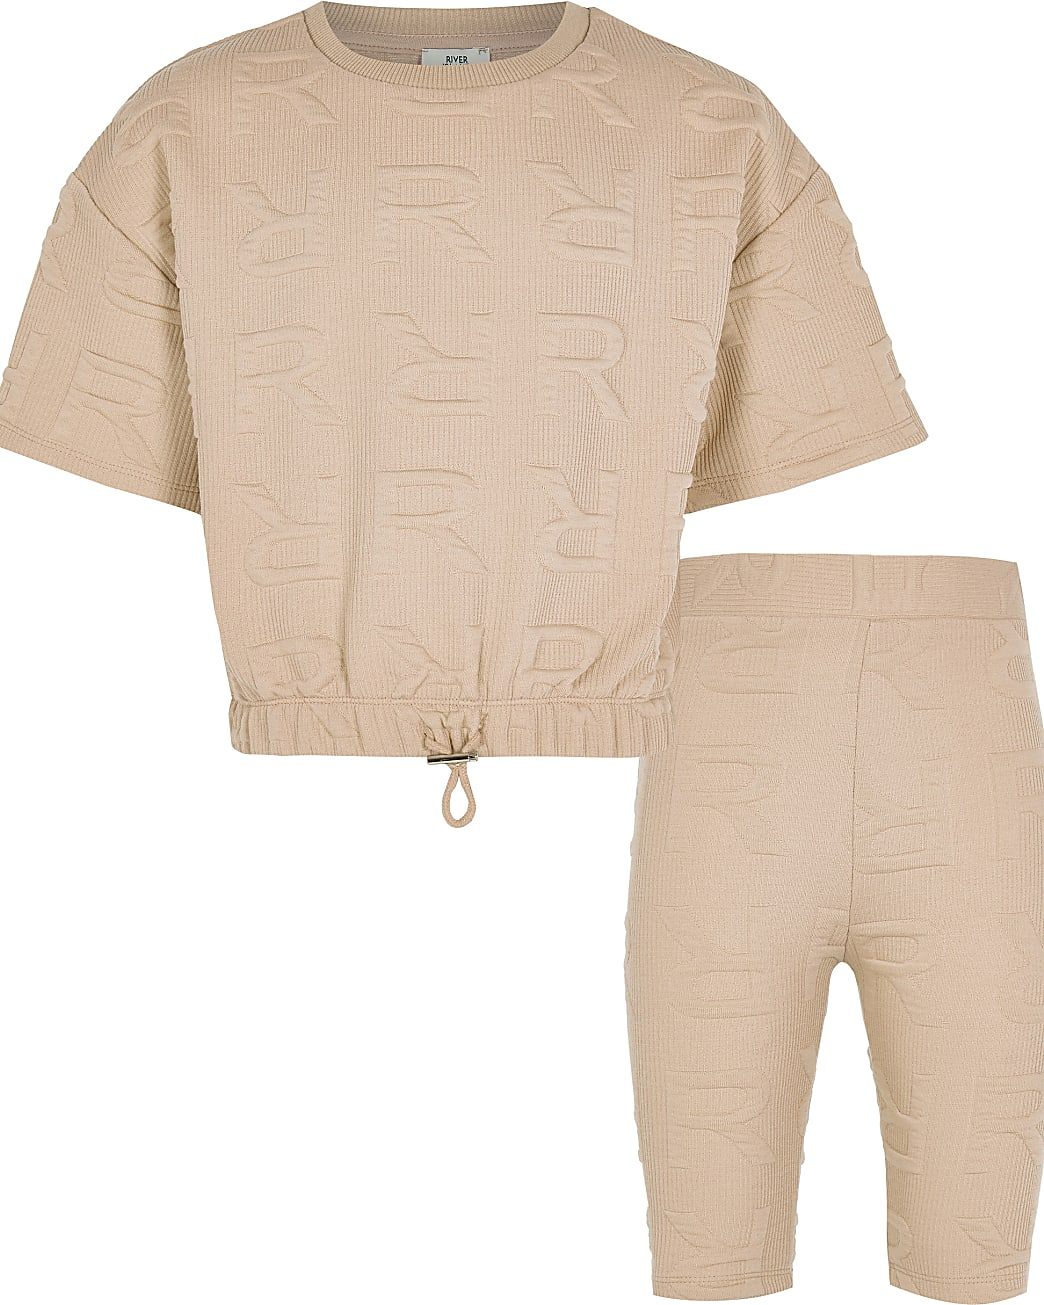 Girls beige 'RR' embossed shorts outfit